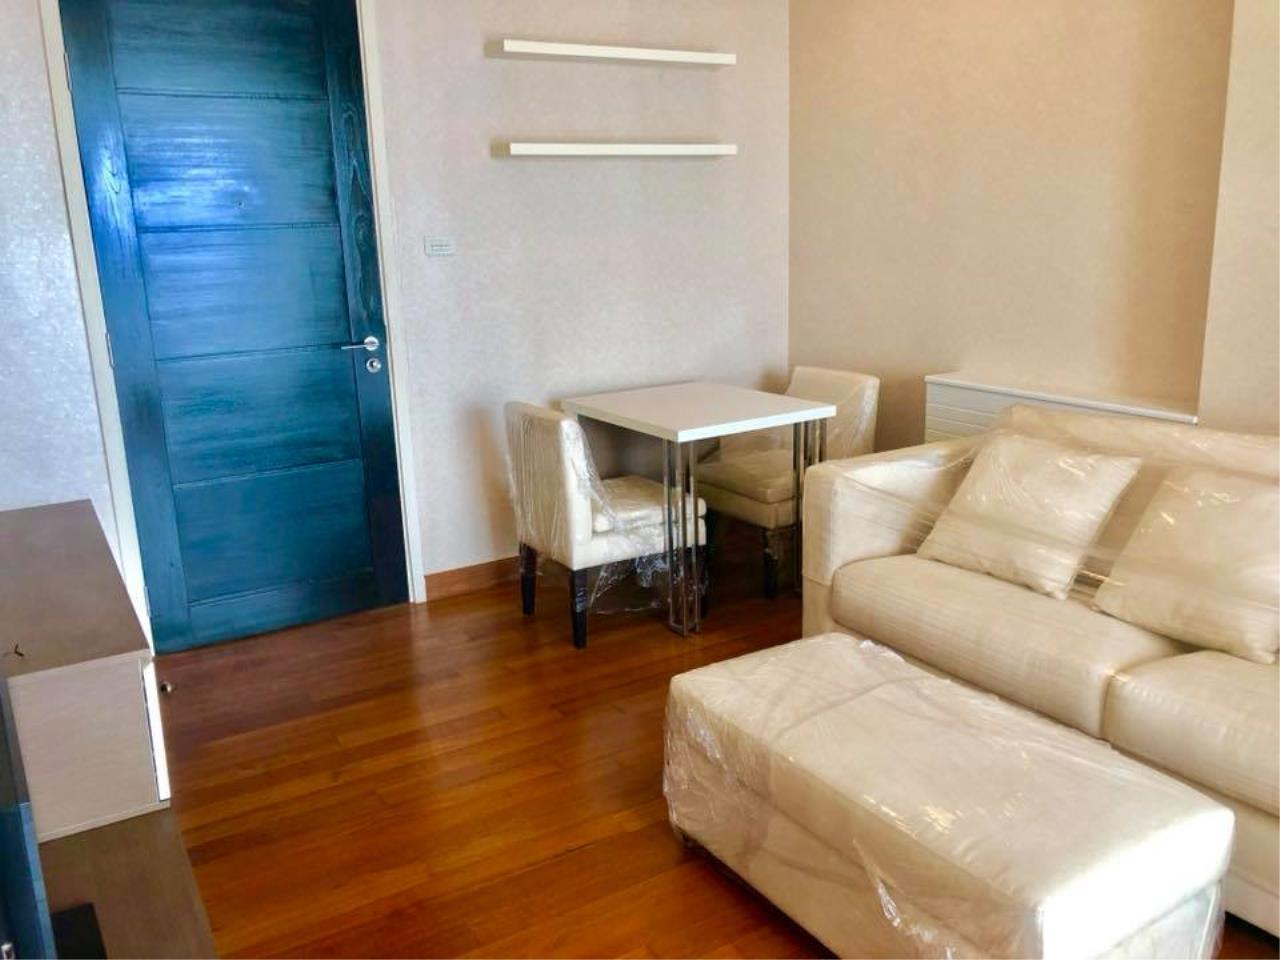 Quality Life Property Agency's S A L E !! || IVY SATHORN 10|| 1BR 33.64 Sq.m. NEW UNIT!! 4